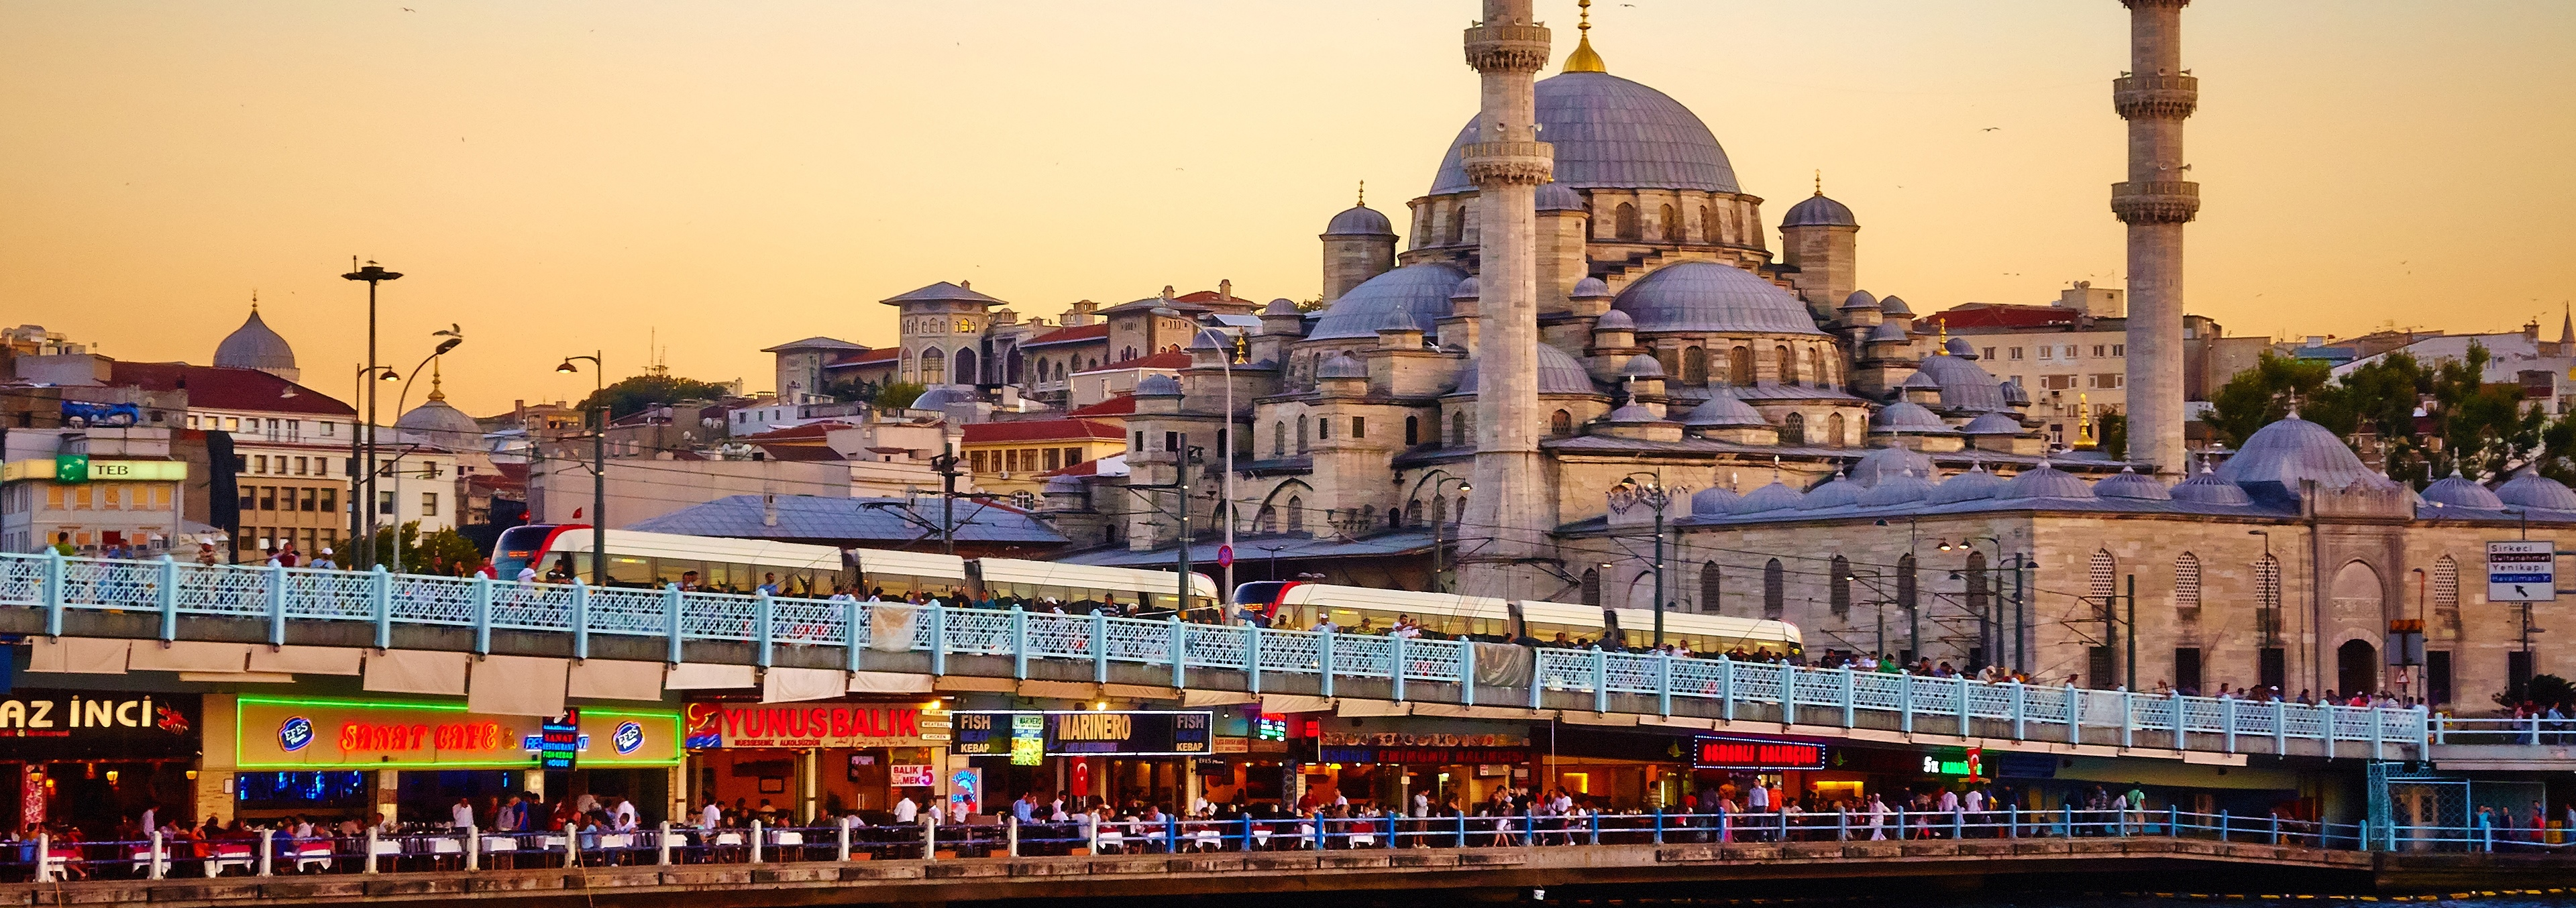 turkey city hindu dating site India travel & tourism guide  holiday packages & travel blogs about indian tourism on travelindiacom read best indian travel  scientists make dating profile.